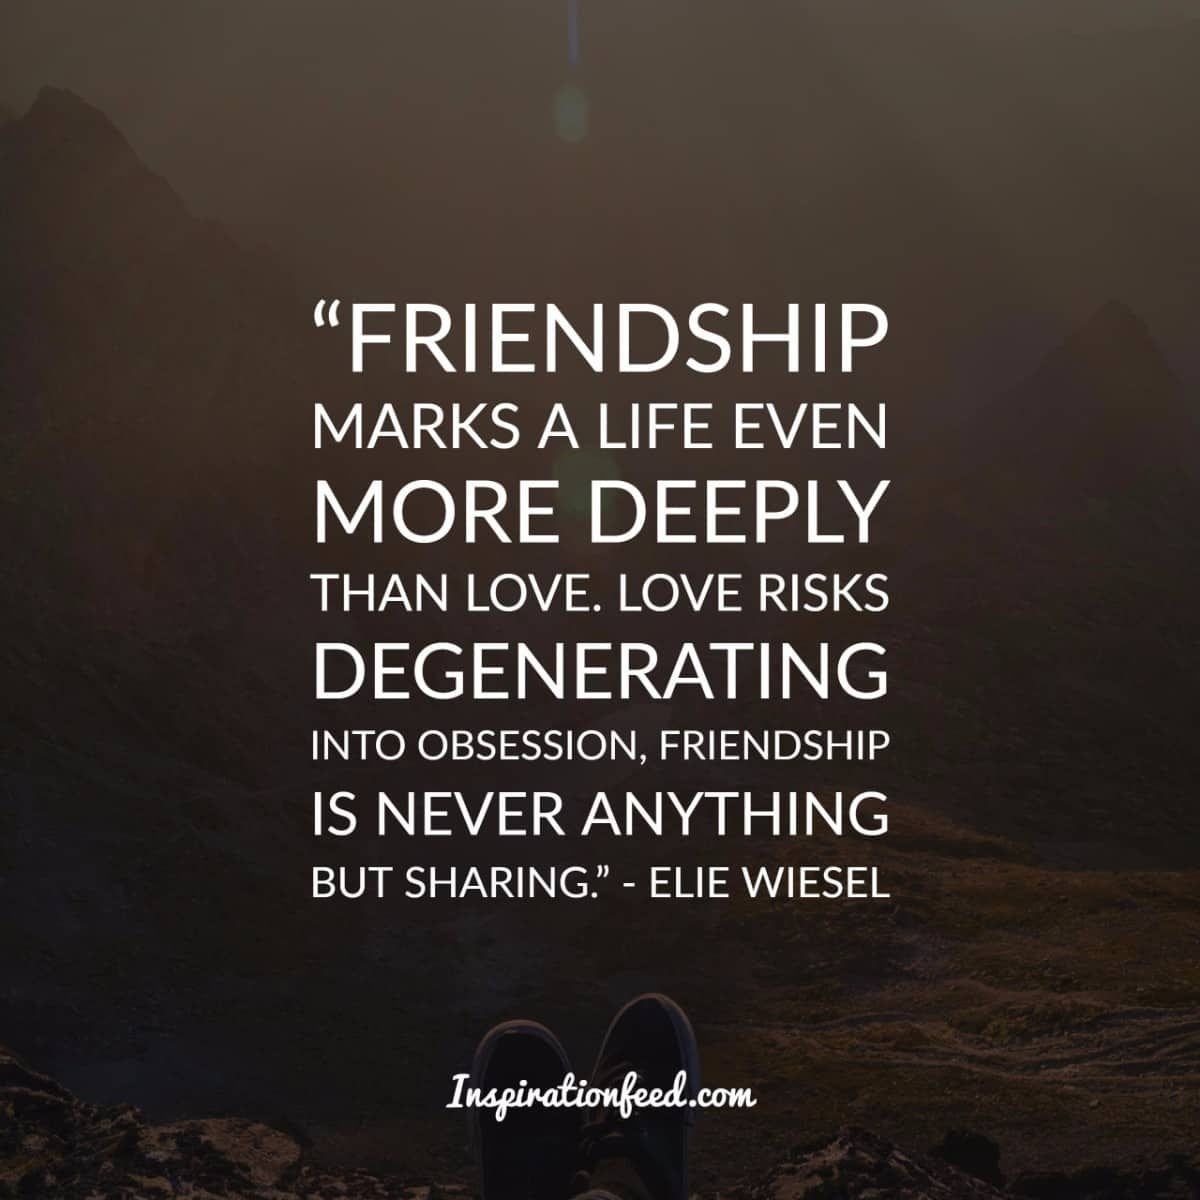 40 friendship quotes to celebrate your friends pinterest friendship quotes to celebrate your friends friendship quotes funny true inspirational meaningful short wisdom deep cute loyalty real thecheapjerseys